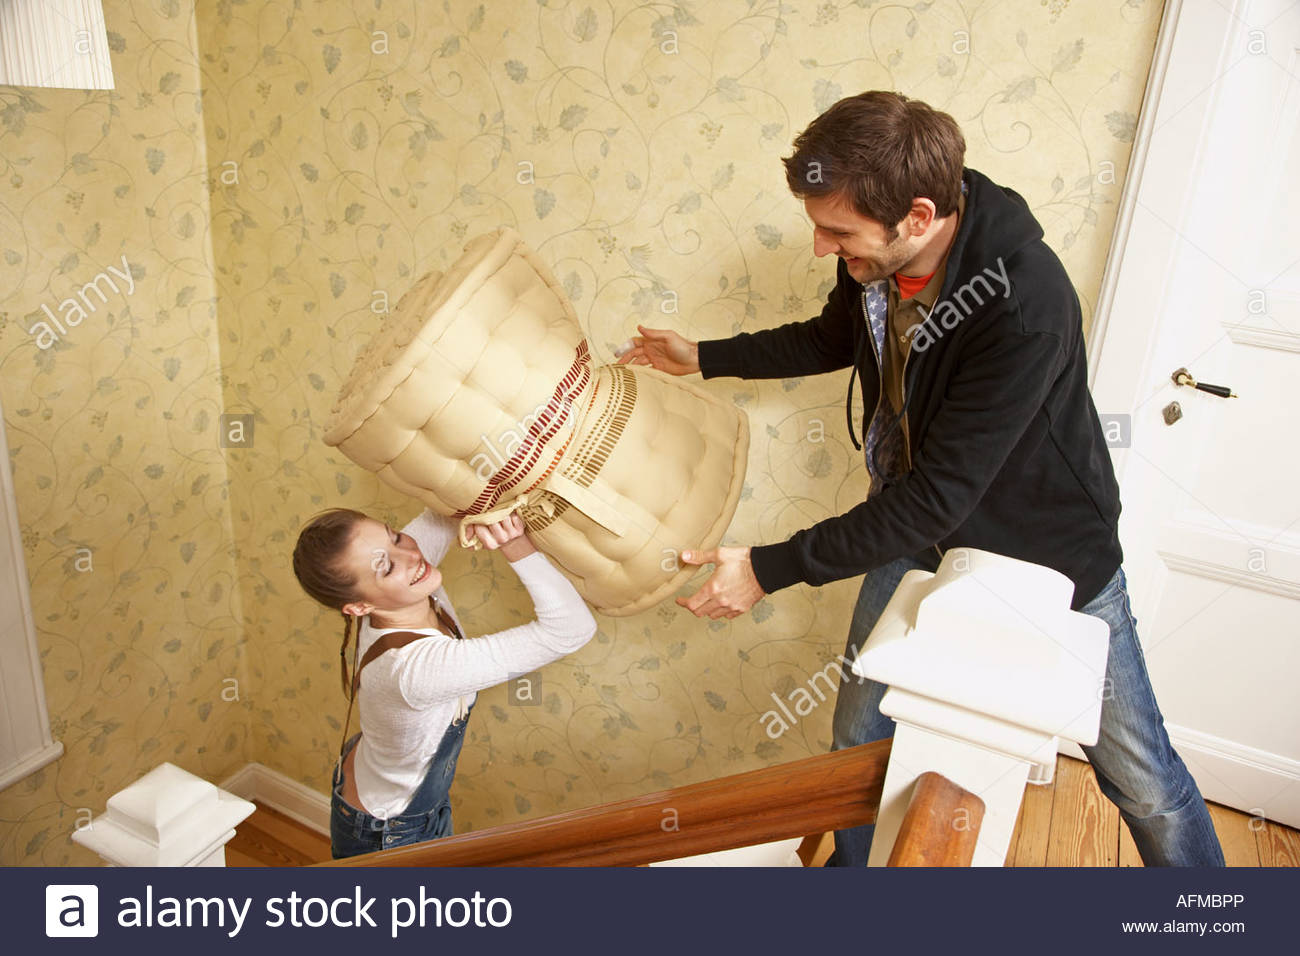 High angle view of a young woman giving a rolled up mattress to a young man - Stock Image